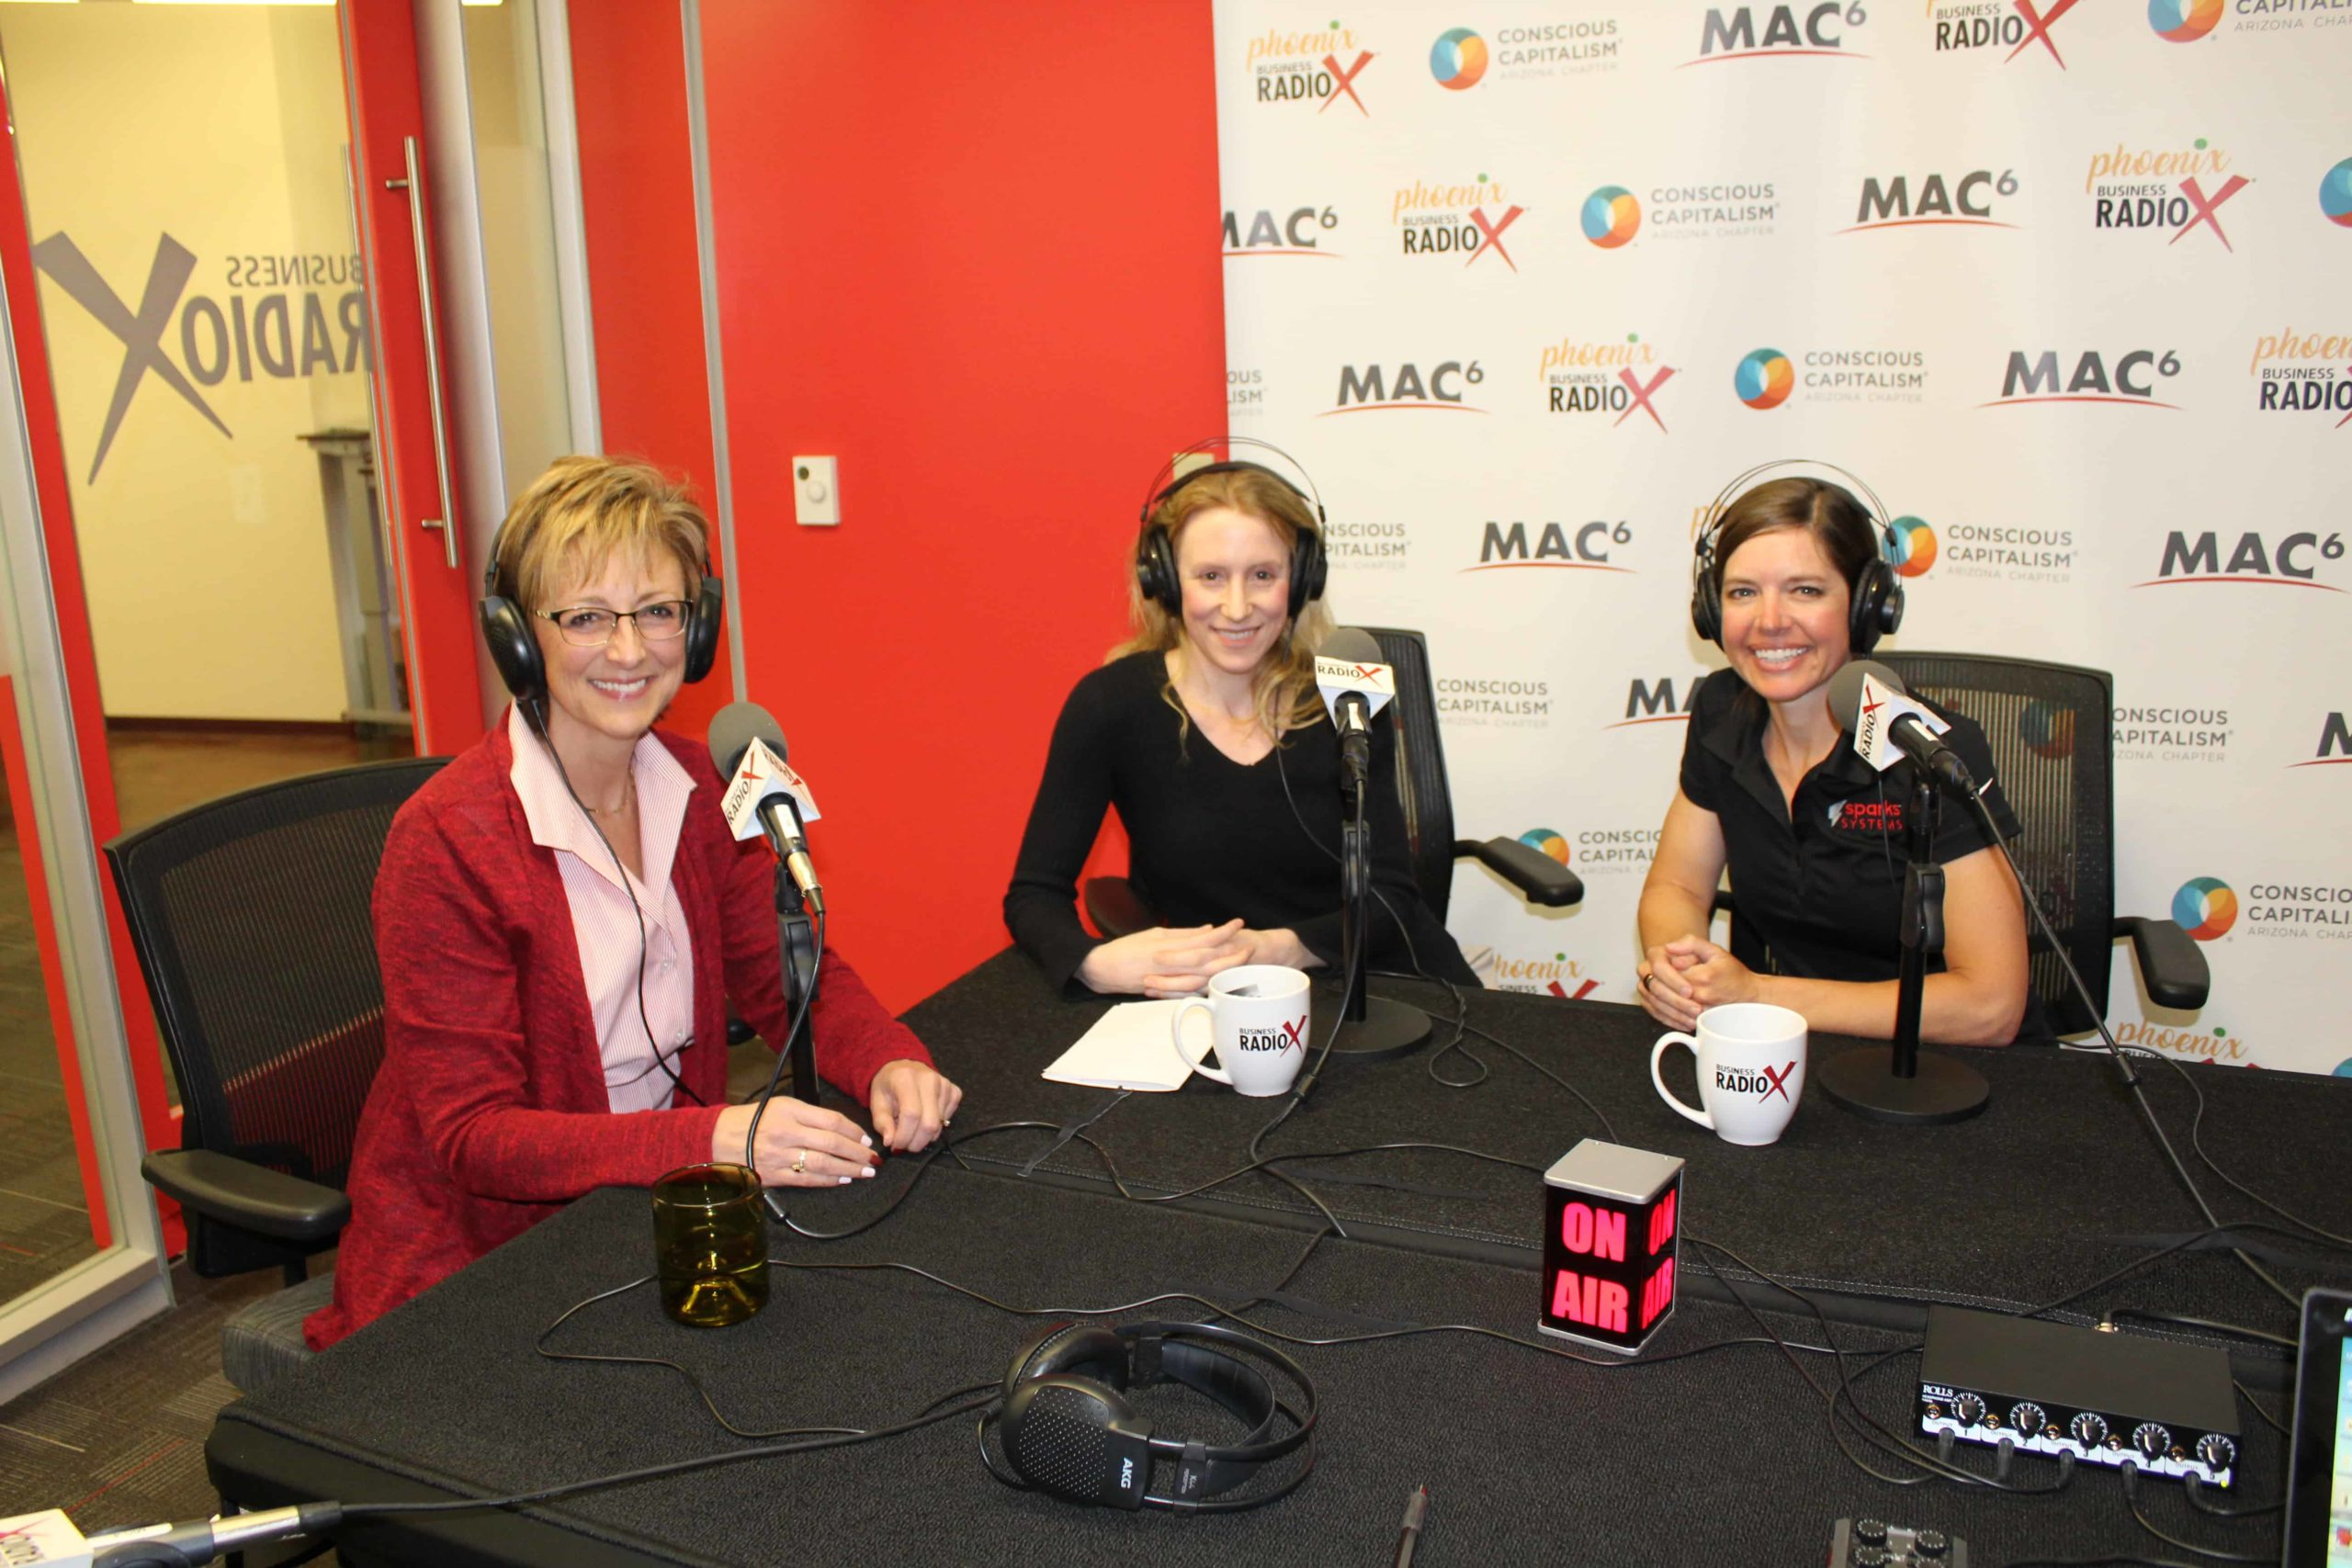 MMM Podcast Anna Spark and Chrissy Barth on Mind, Money, Motion with Marie Burns